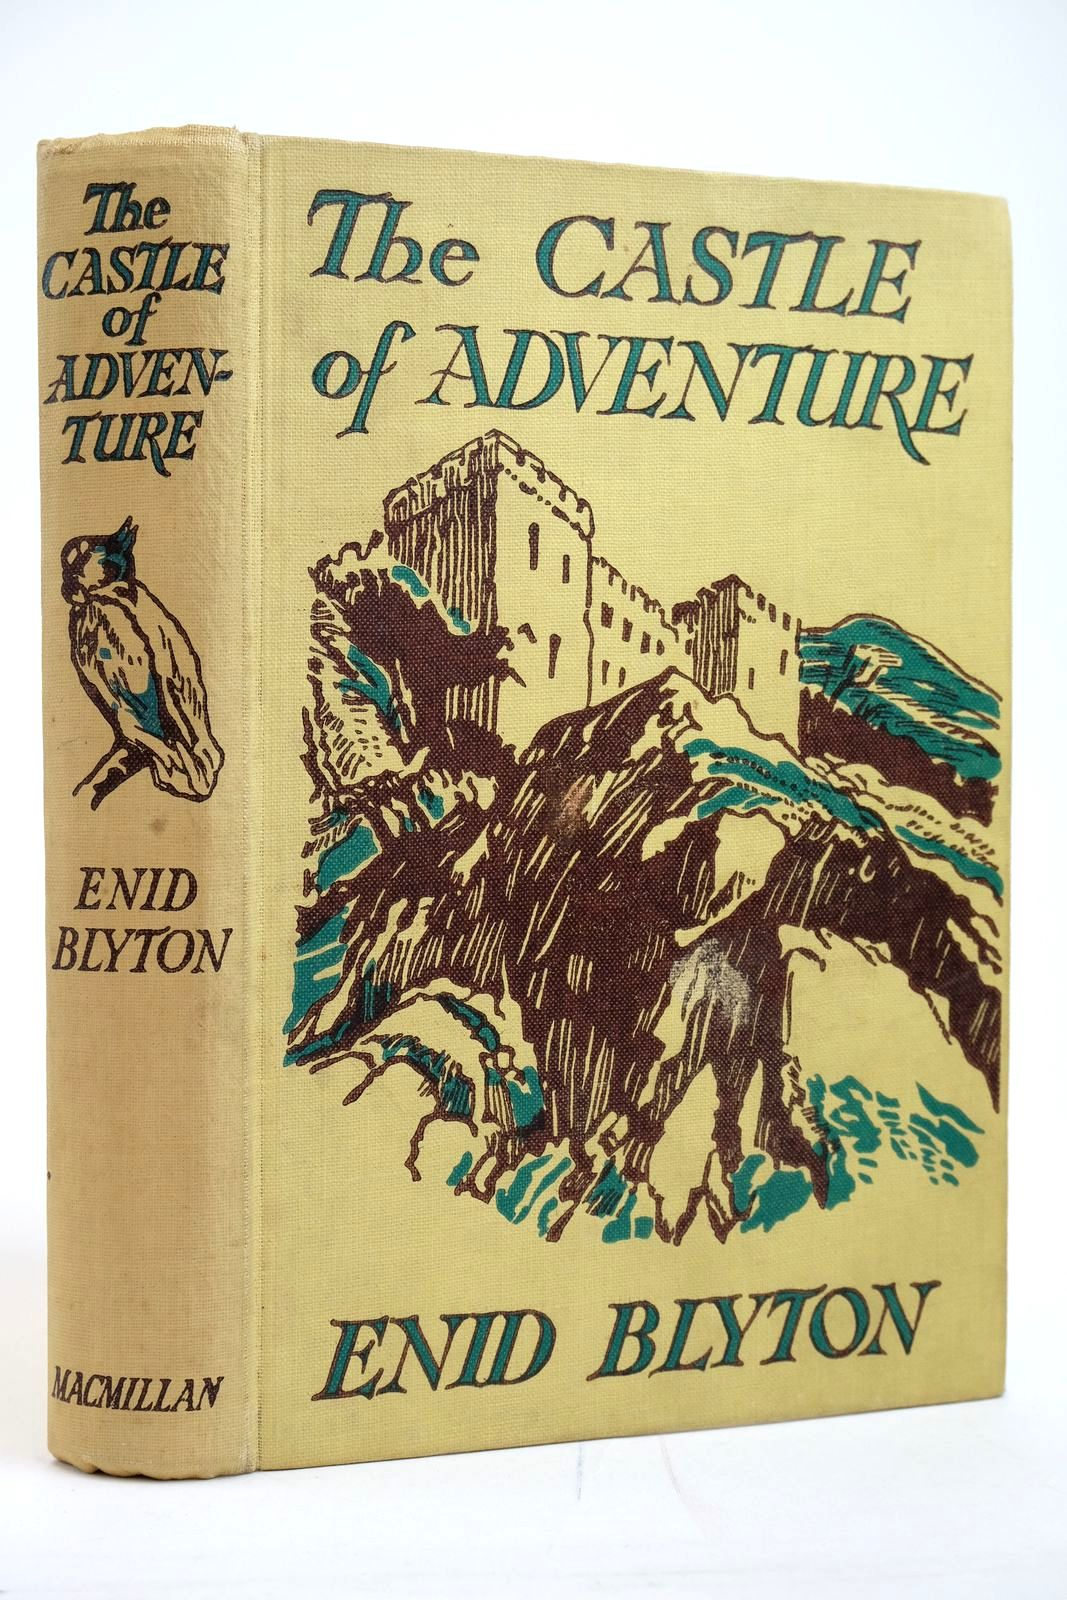 Photo of THE CASTLE OF ADVENTURE written by Blyton, Enid illustrated by Tresilian, Stuart published by Macmillan & Co. Ltd. (STOCK CODE: 2135165)  for sale by Stella & Rose's Books